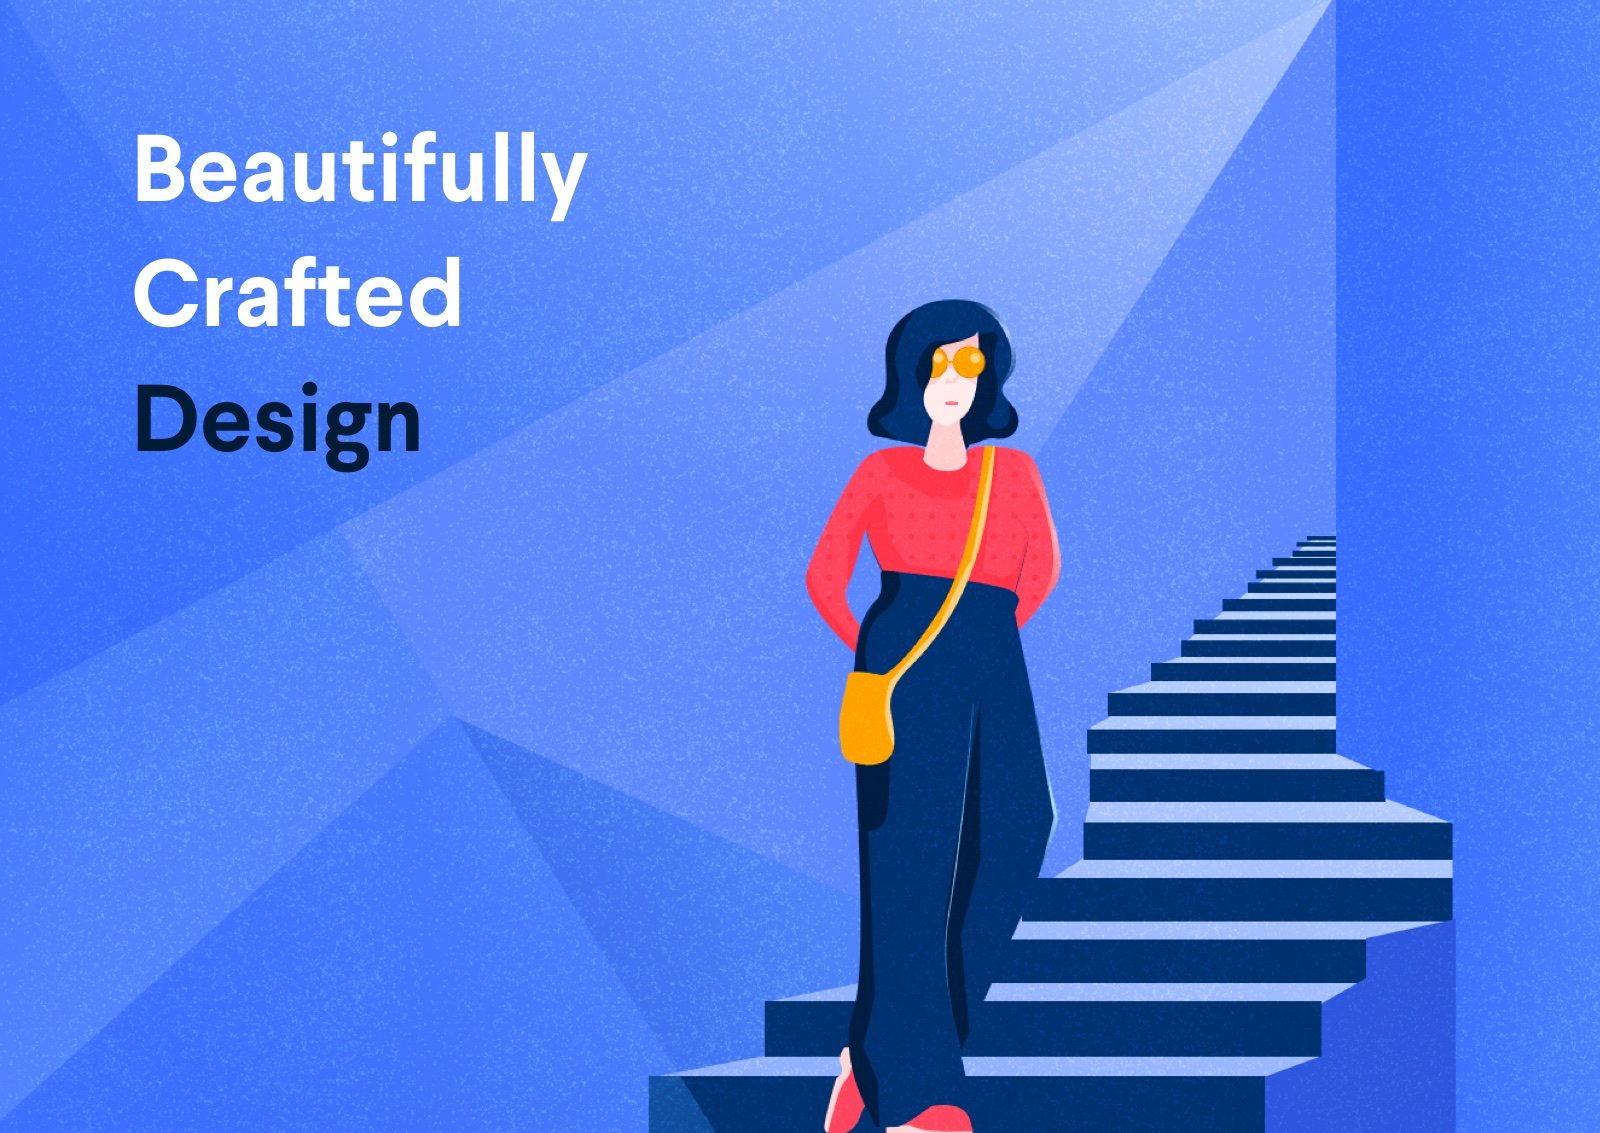 Beautifully Crafted Design Illustration